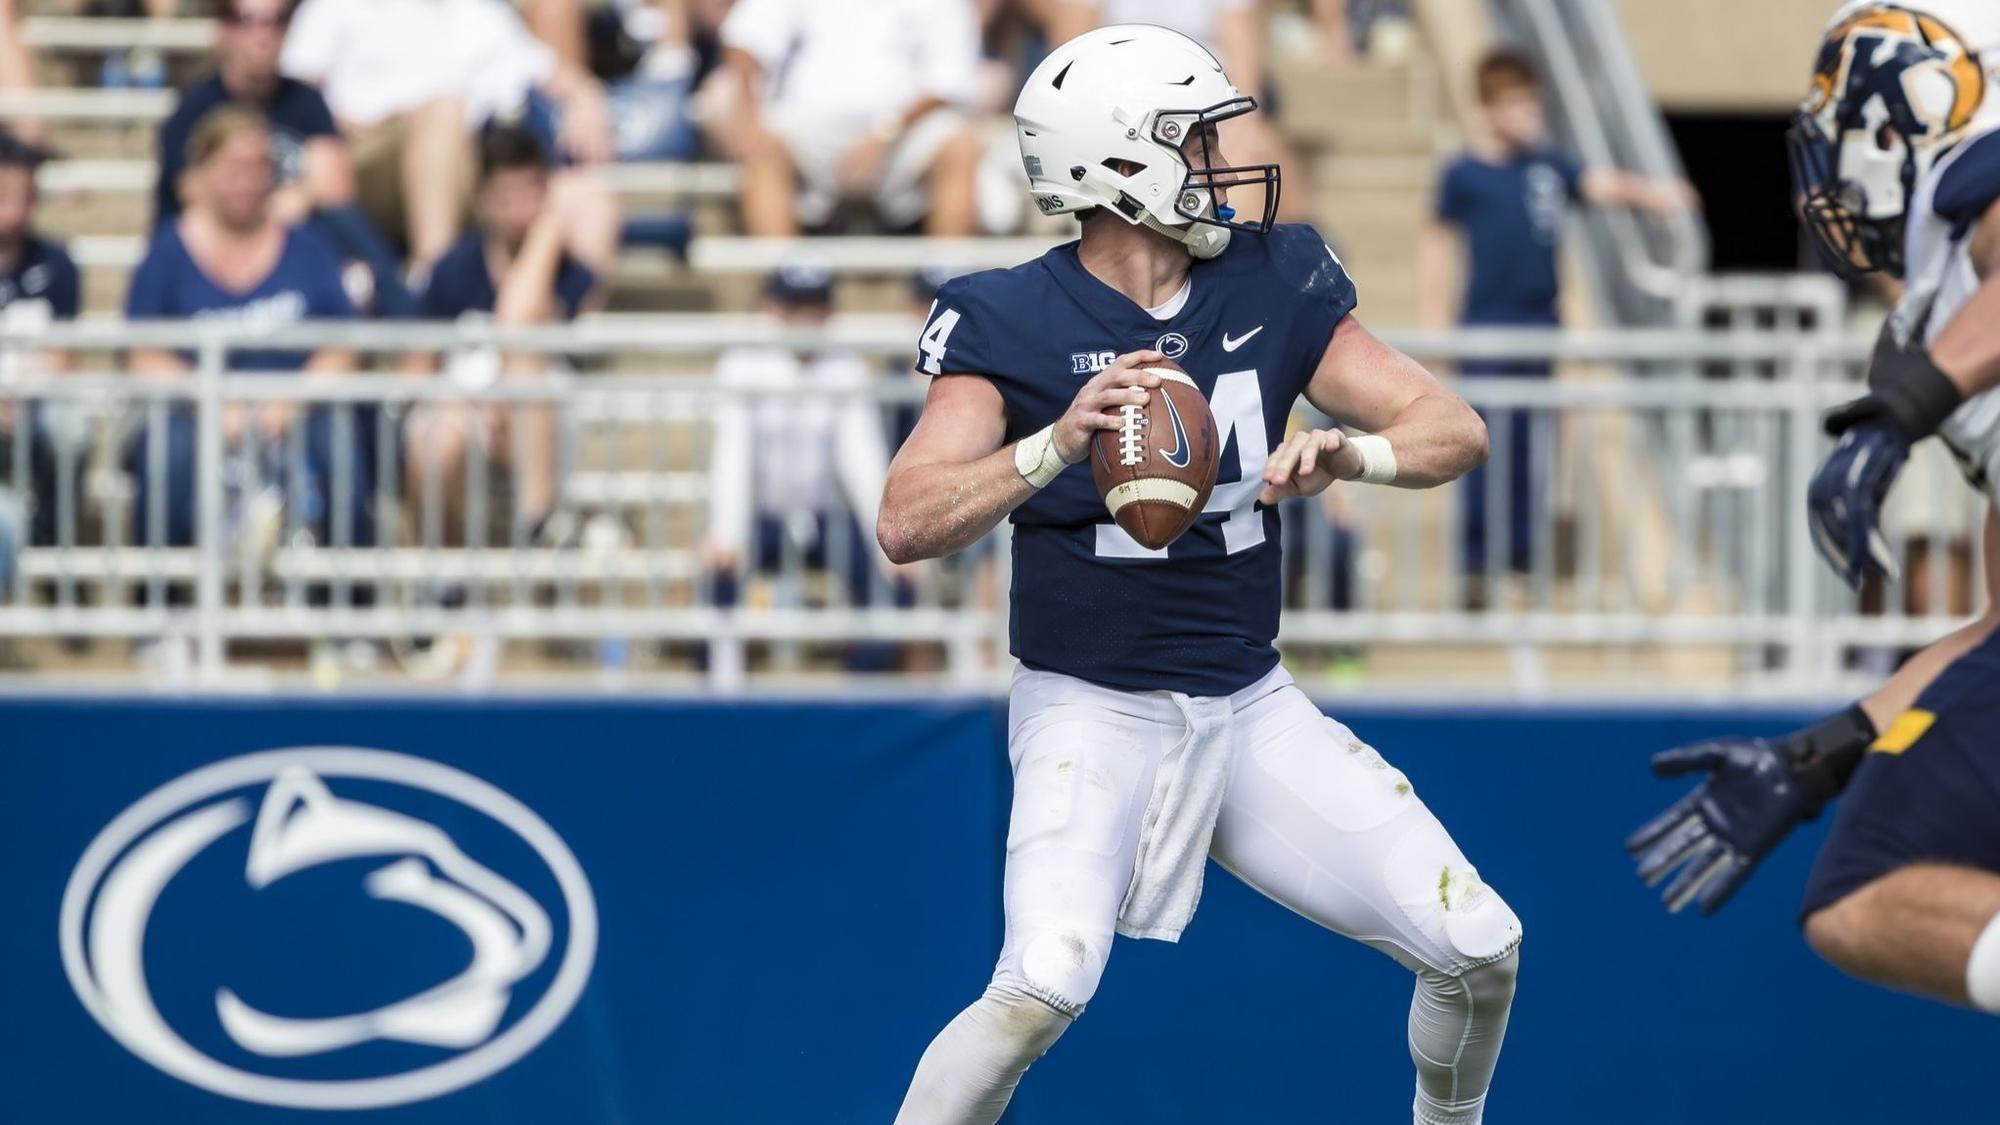 Penn State S Perfect Backup Quarterback Sean Clifford S Folkloric Start The Morning Call